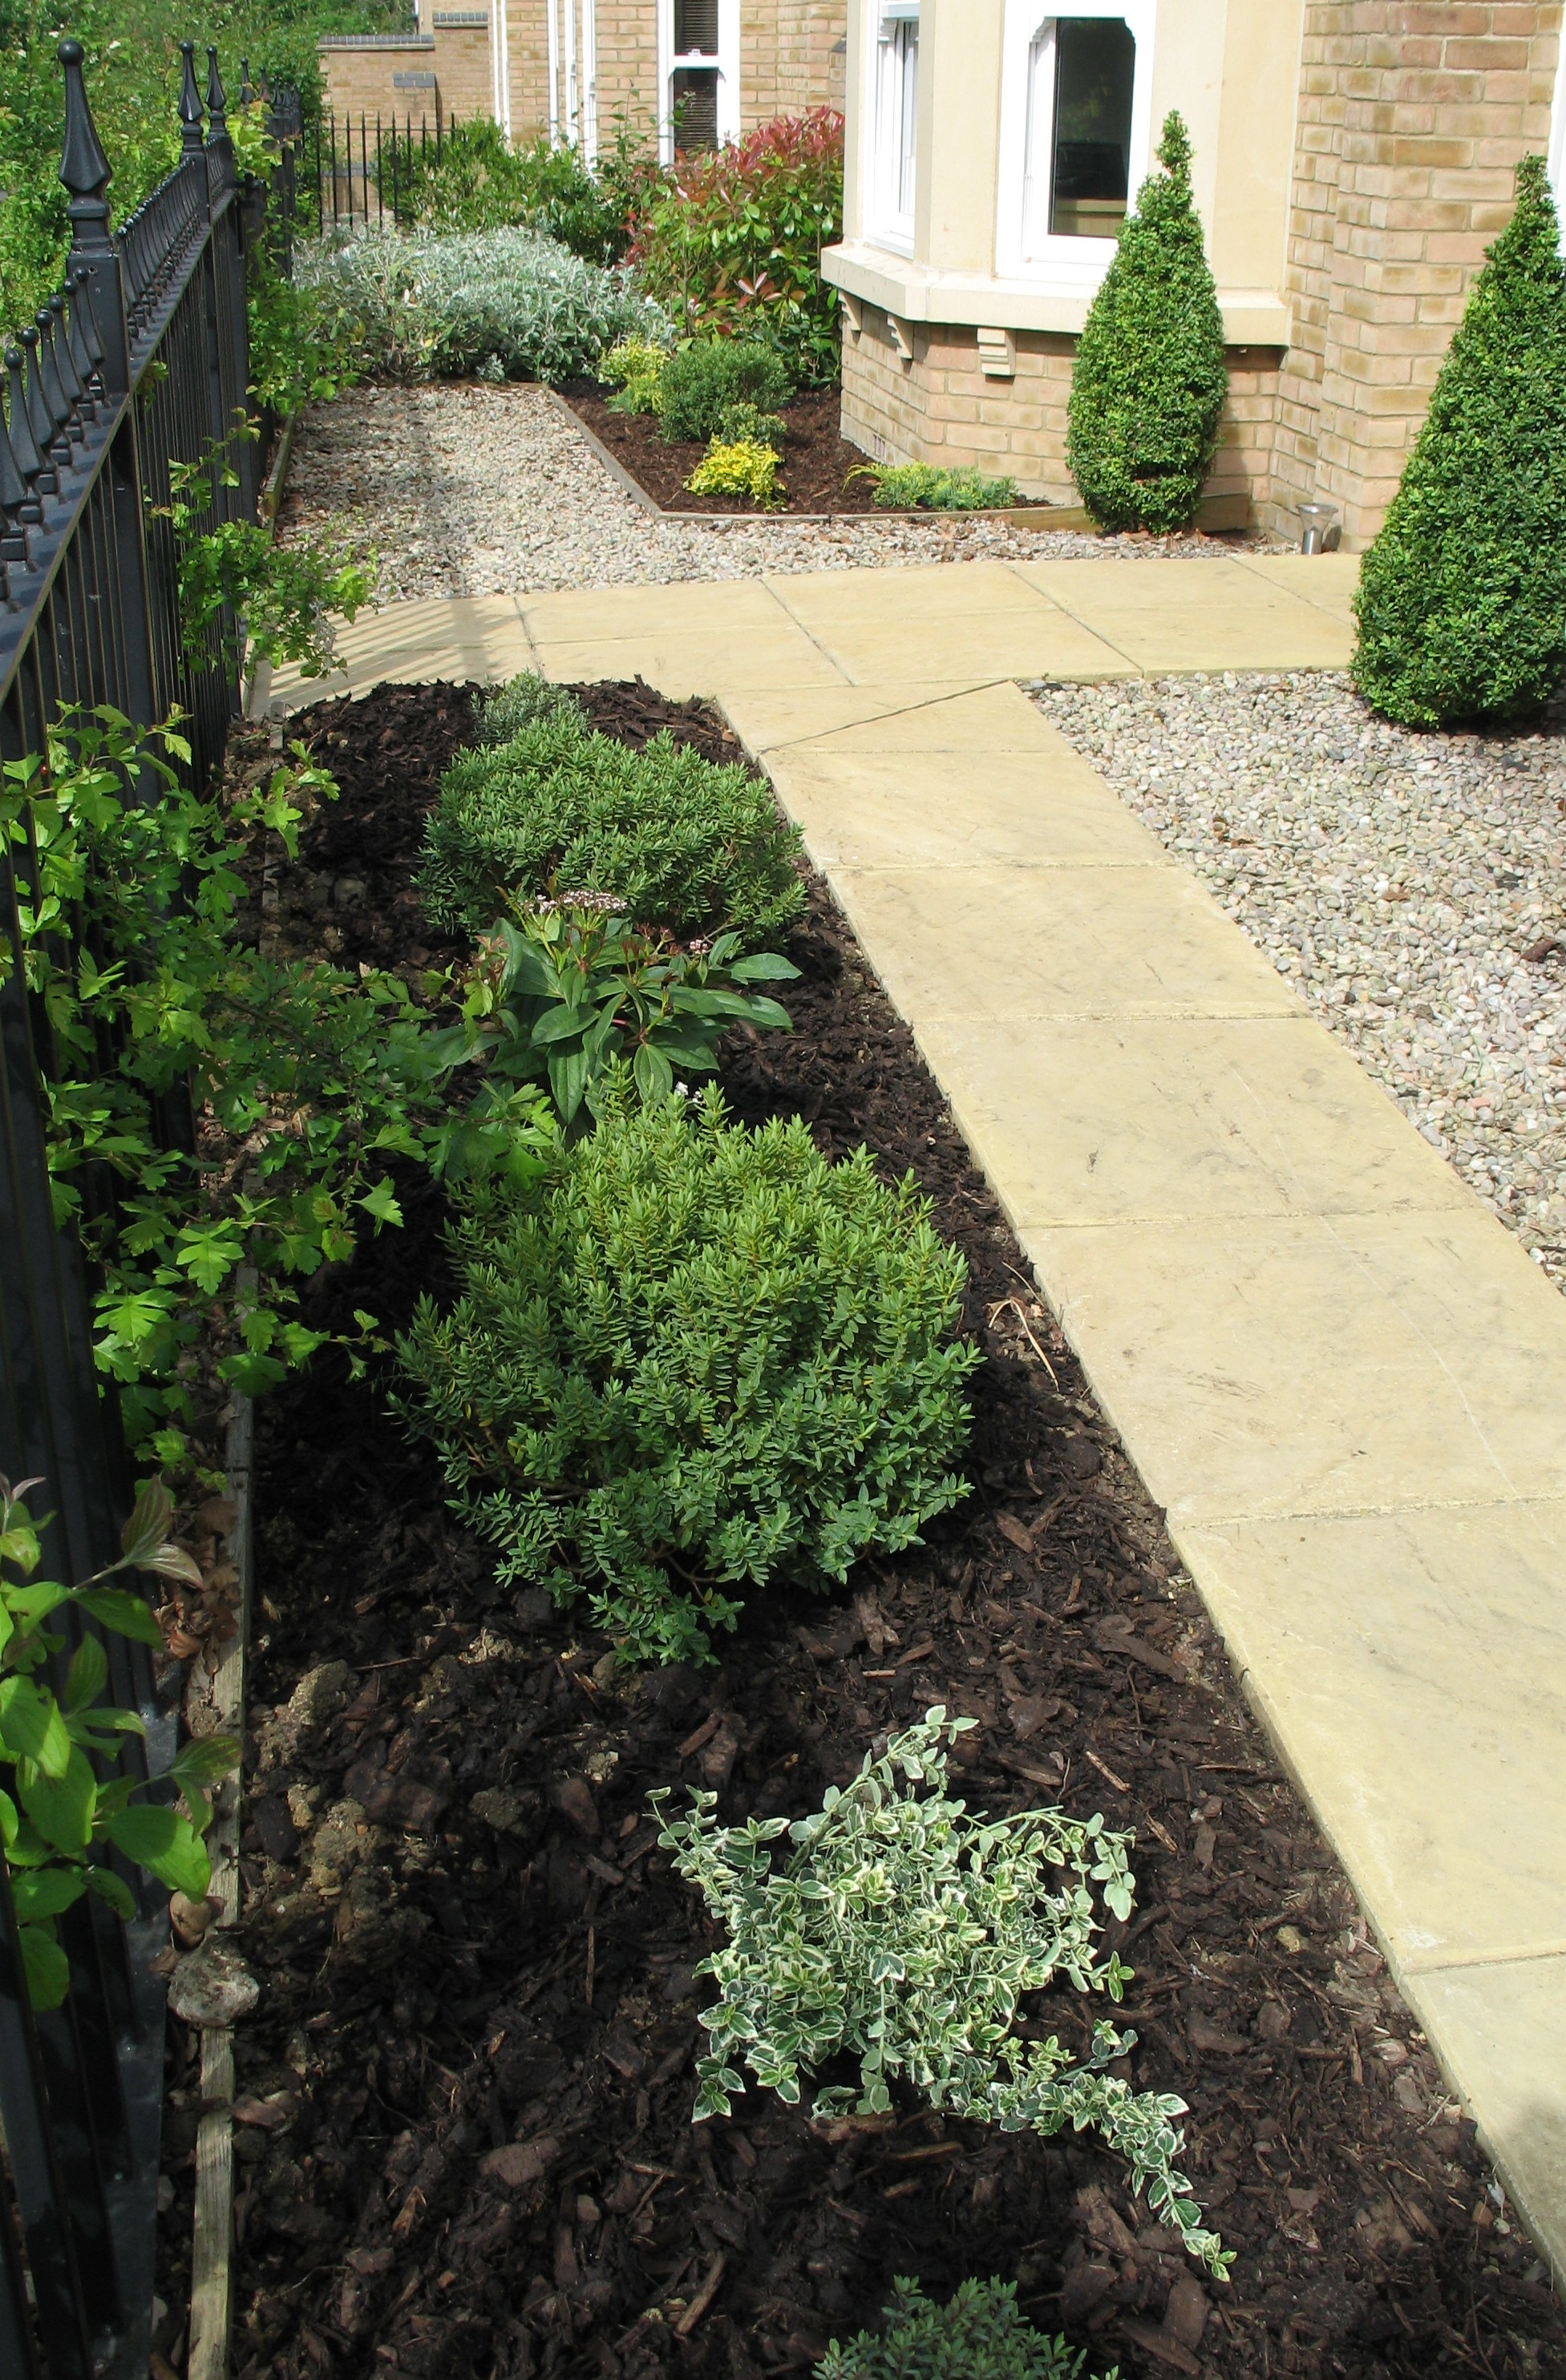 Easy plants for a front garden karen tizzard garden design for Simple front garden designs